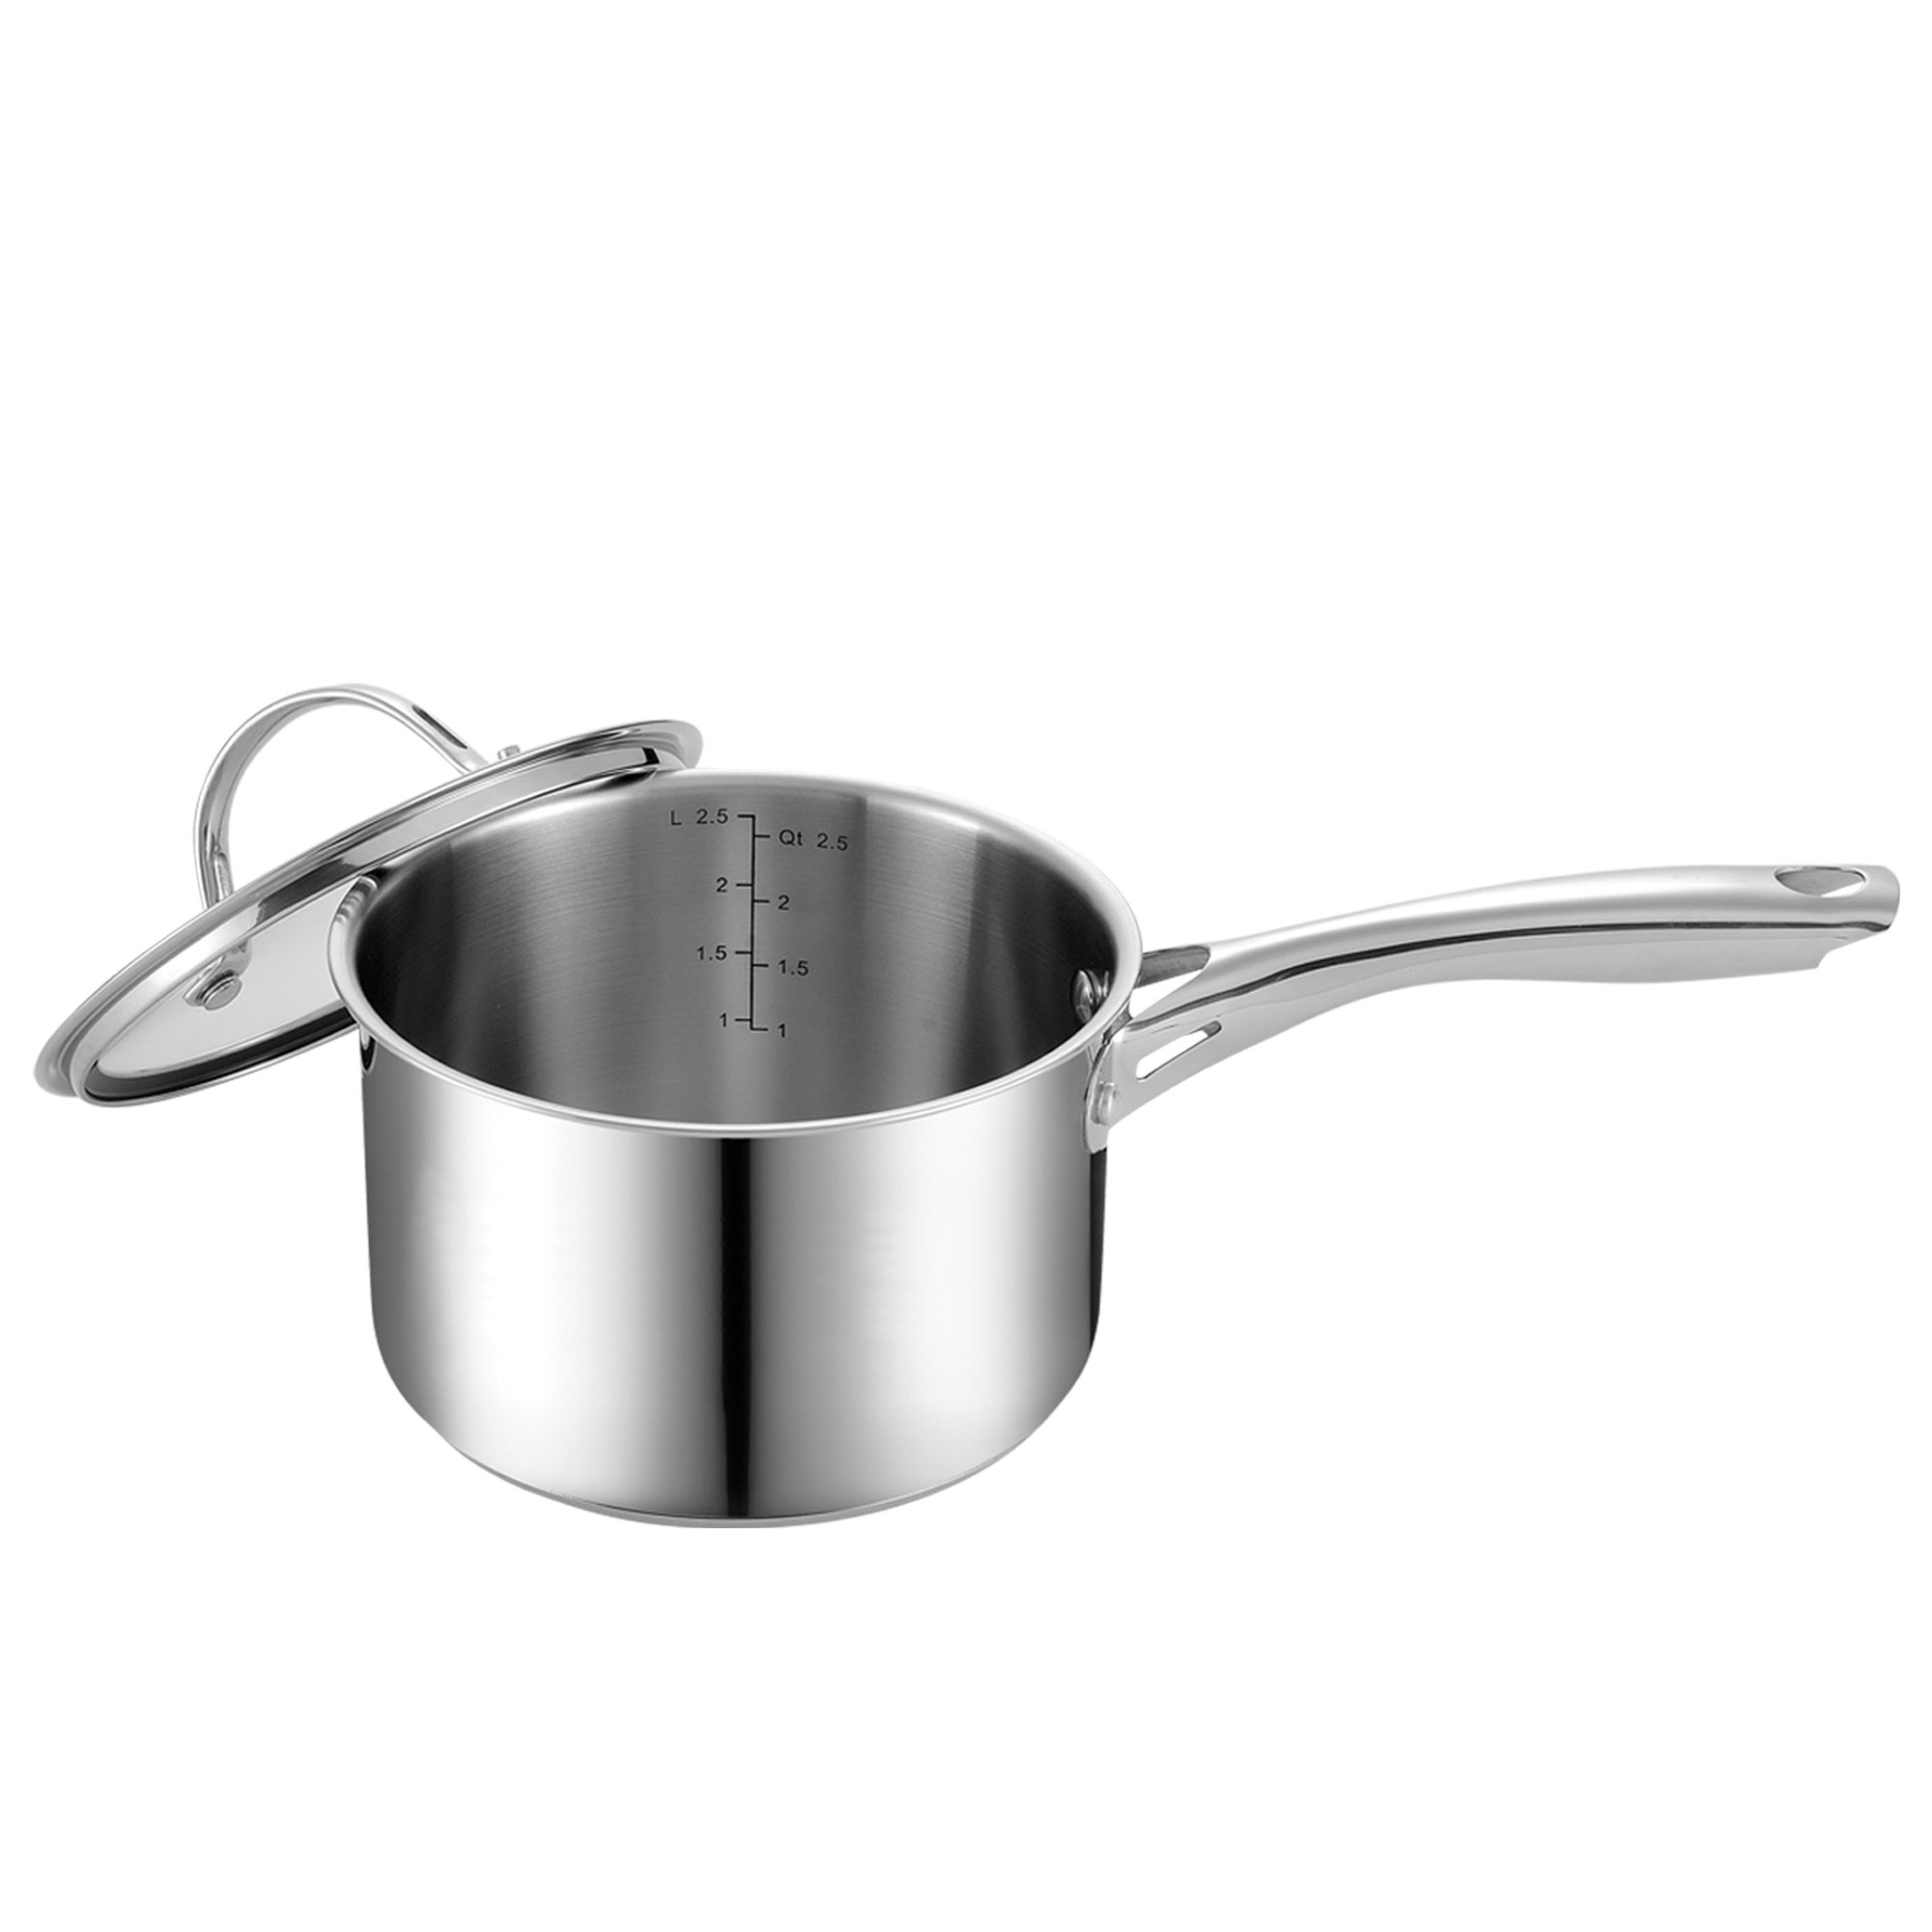 Cooks Standard Stainless Steel 3-QT Sauce Pan with Cover ...